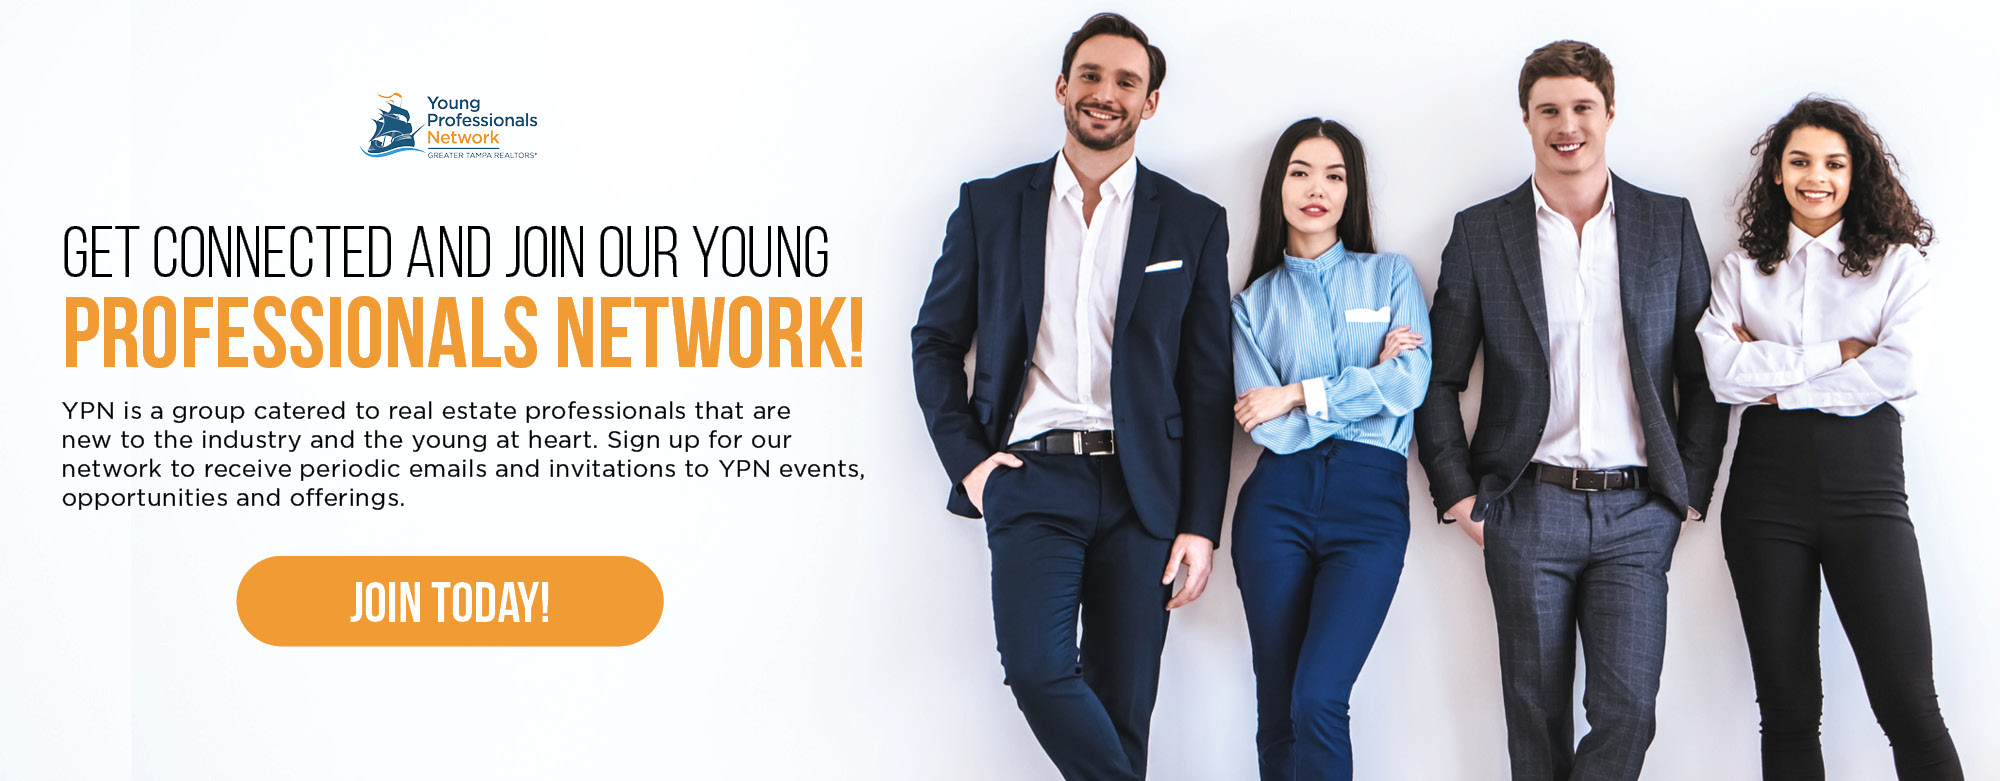 Join YPN web